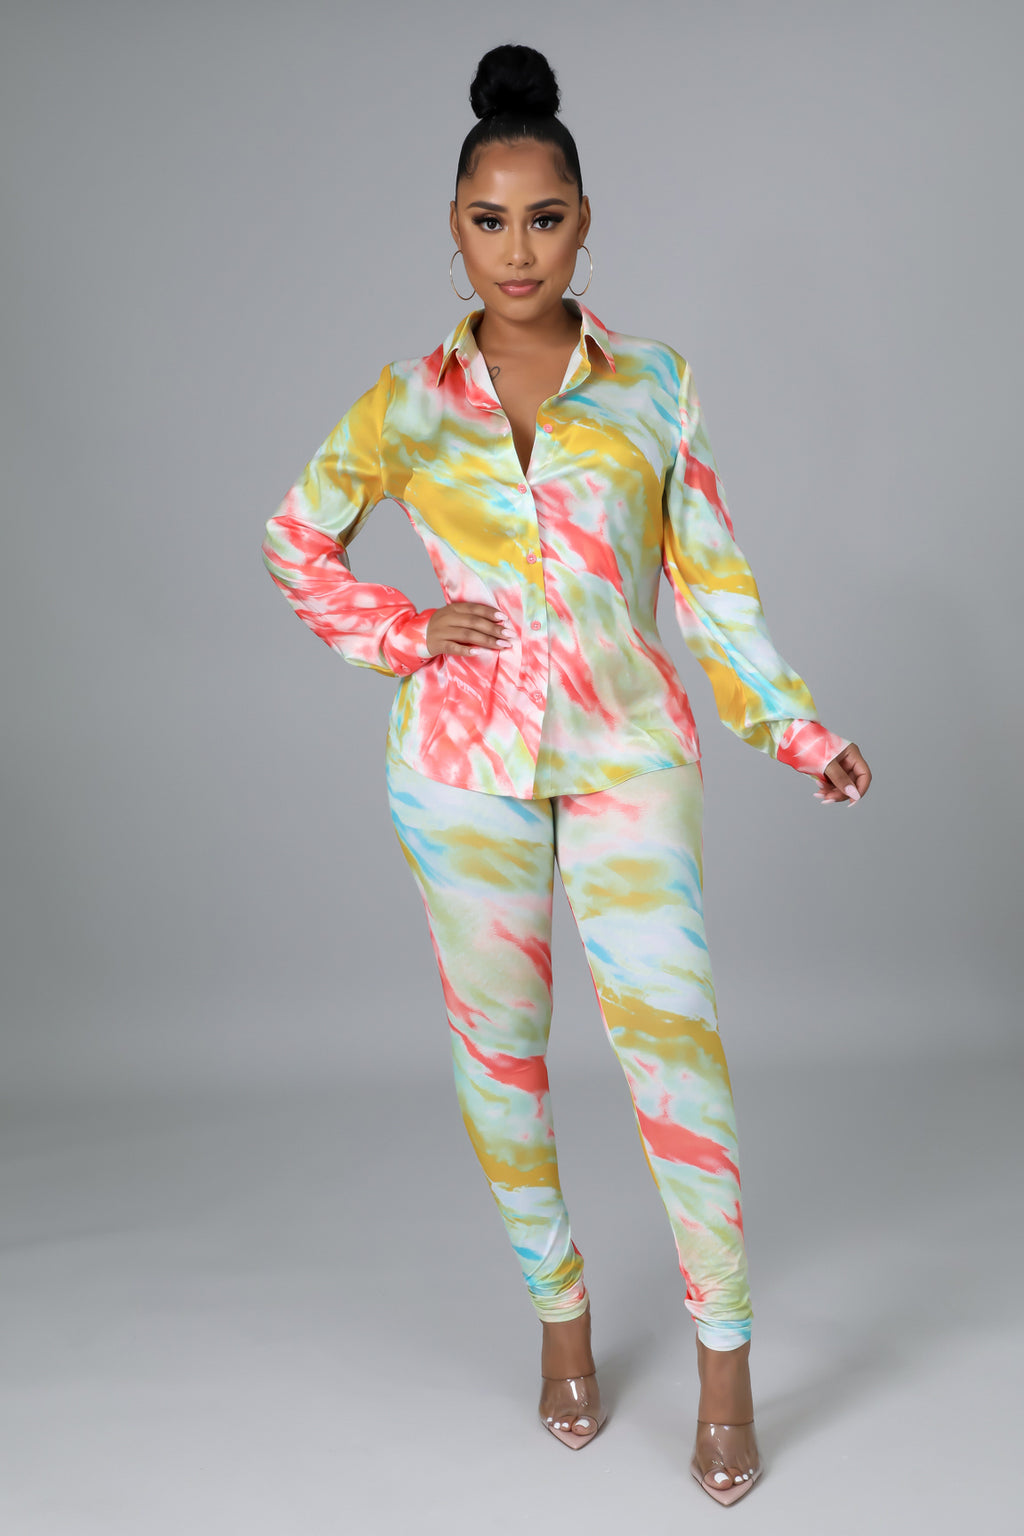 Grammy Glam Maxi Dress